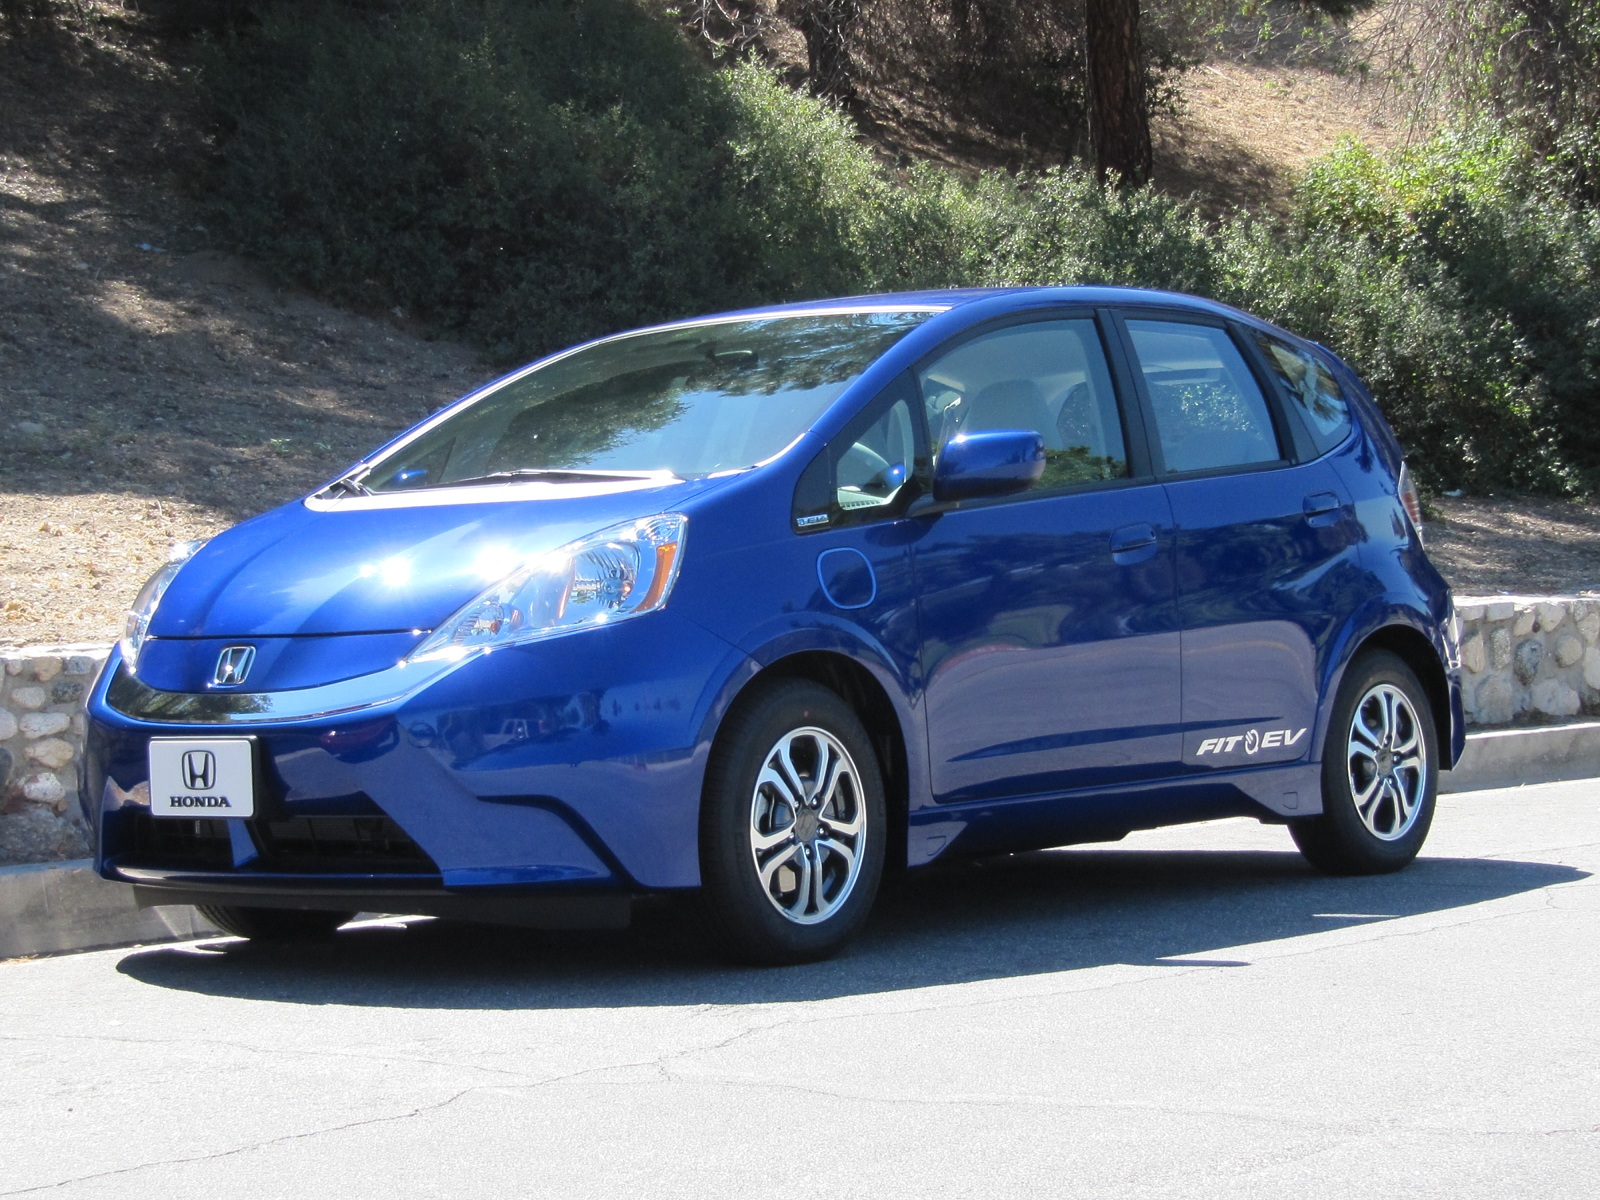 Honda fiat stick to minimal numbers of popular electric cars